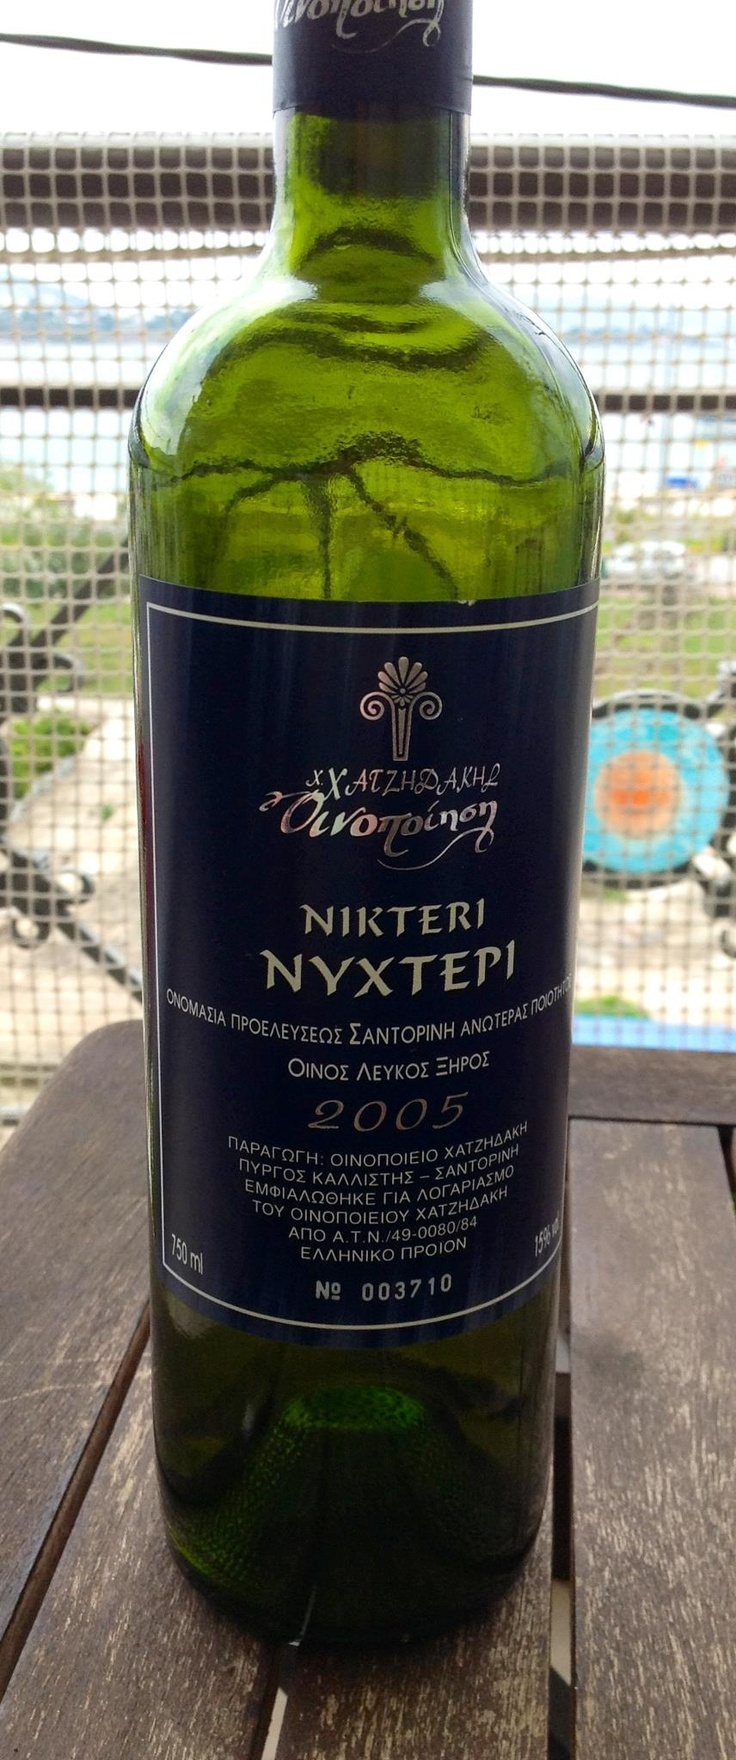 2005 Hatzidakis Winery Santorini Assyrtiko Nykteri. I've tried this wine in its youth in 2006, and was curious to see its development. Clean medium golden. Medium intensity nose, with dominant minerality and hints of citrus, orange zest and some green apple. Full bodied (due to high alcohol of 15%) with medium+ acidity, medium lasting and same aromas of stone and some smoke. Very good but i was expecting a bit more, especially in terms of acidity and finish. 88 points